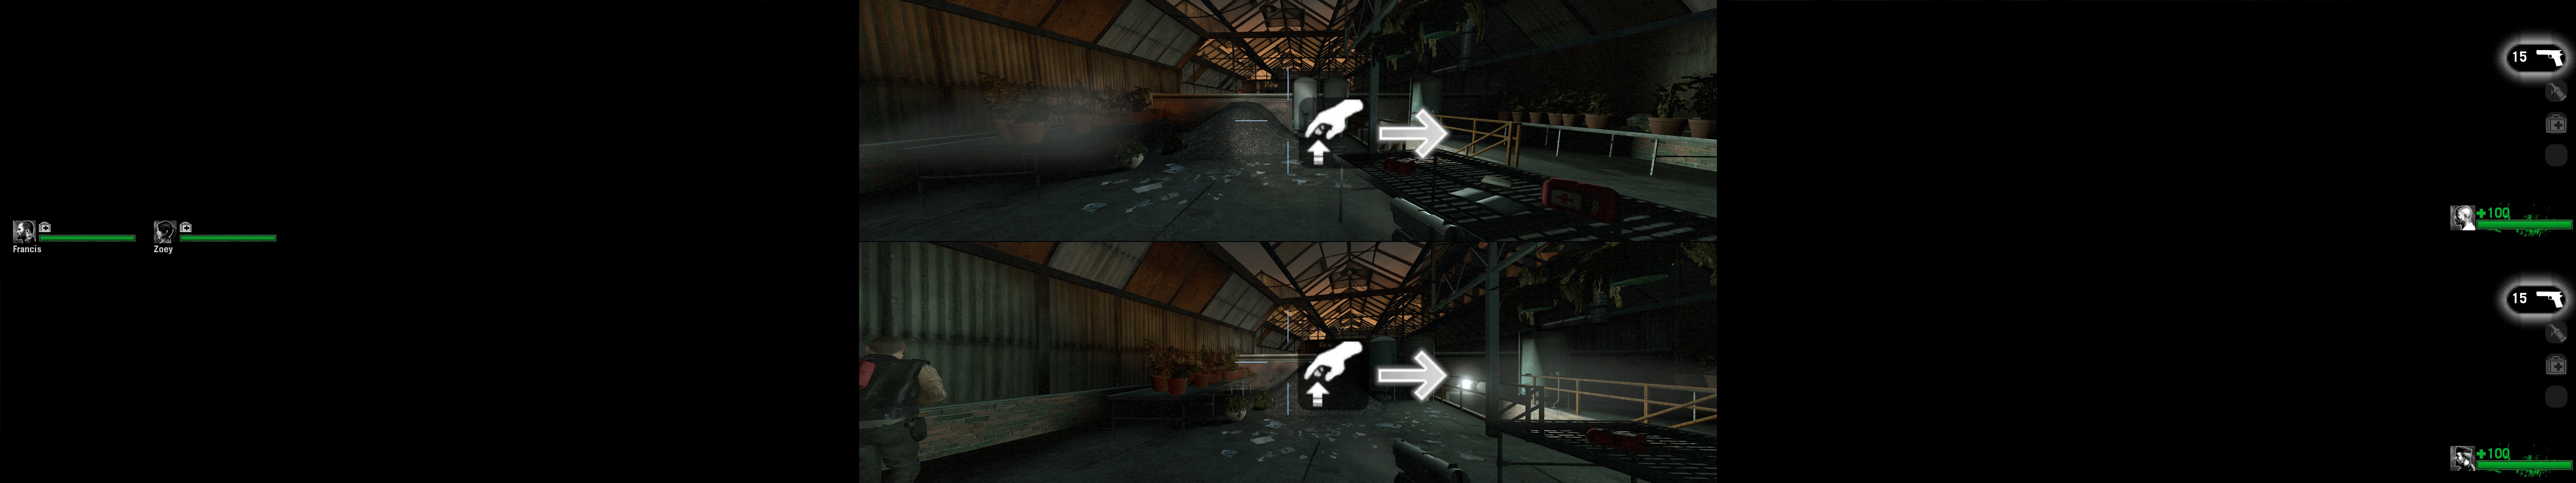 Howto: Left 4 Dead Split Screen with Eyefinity | WSGF